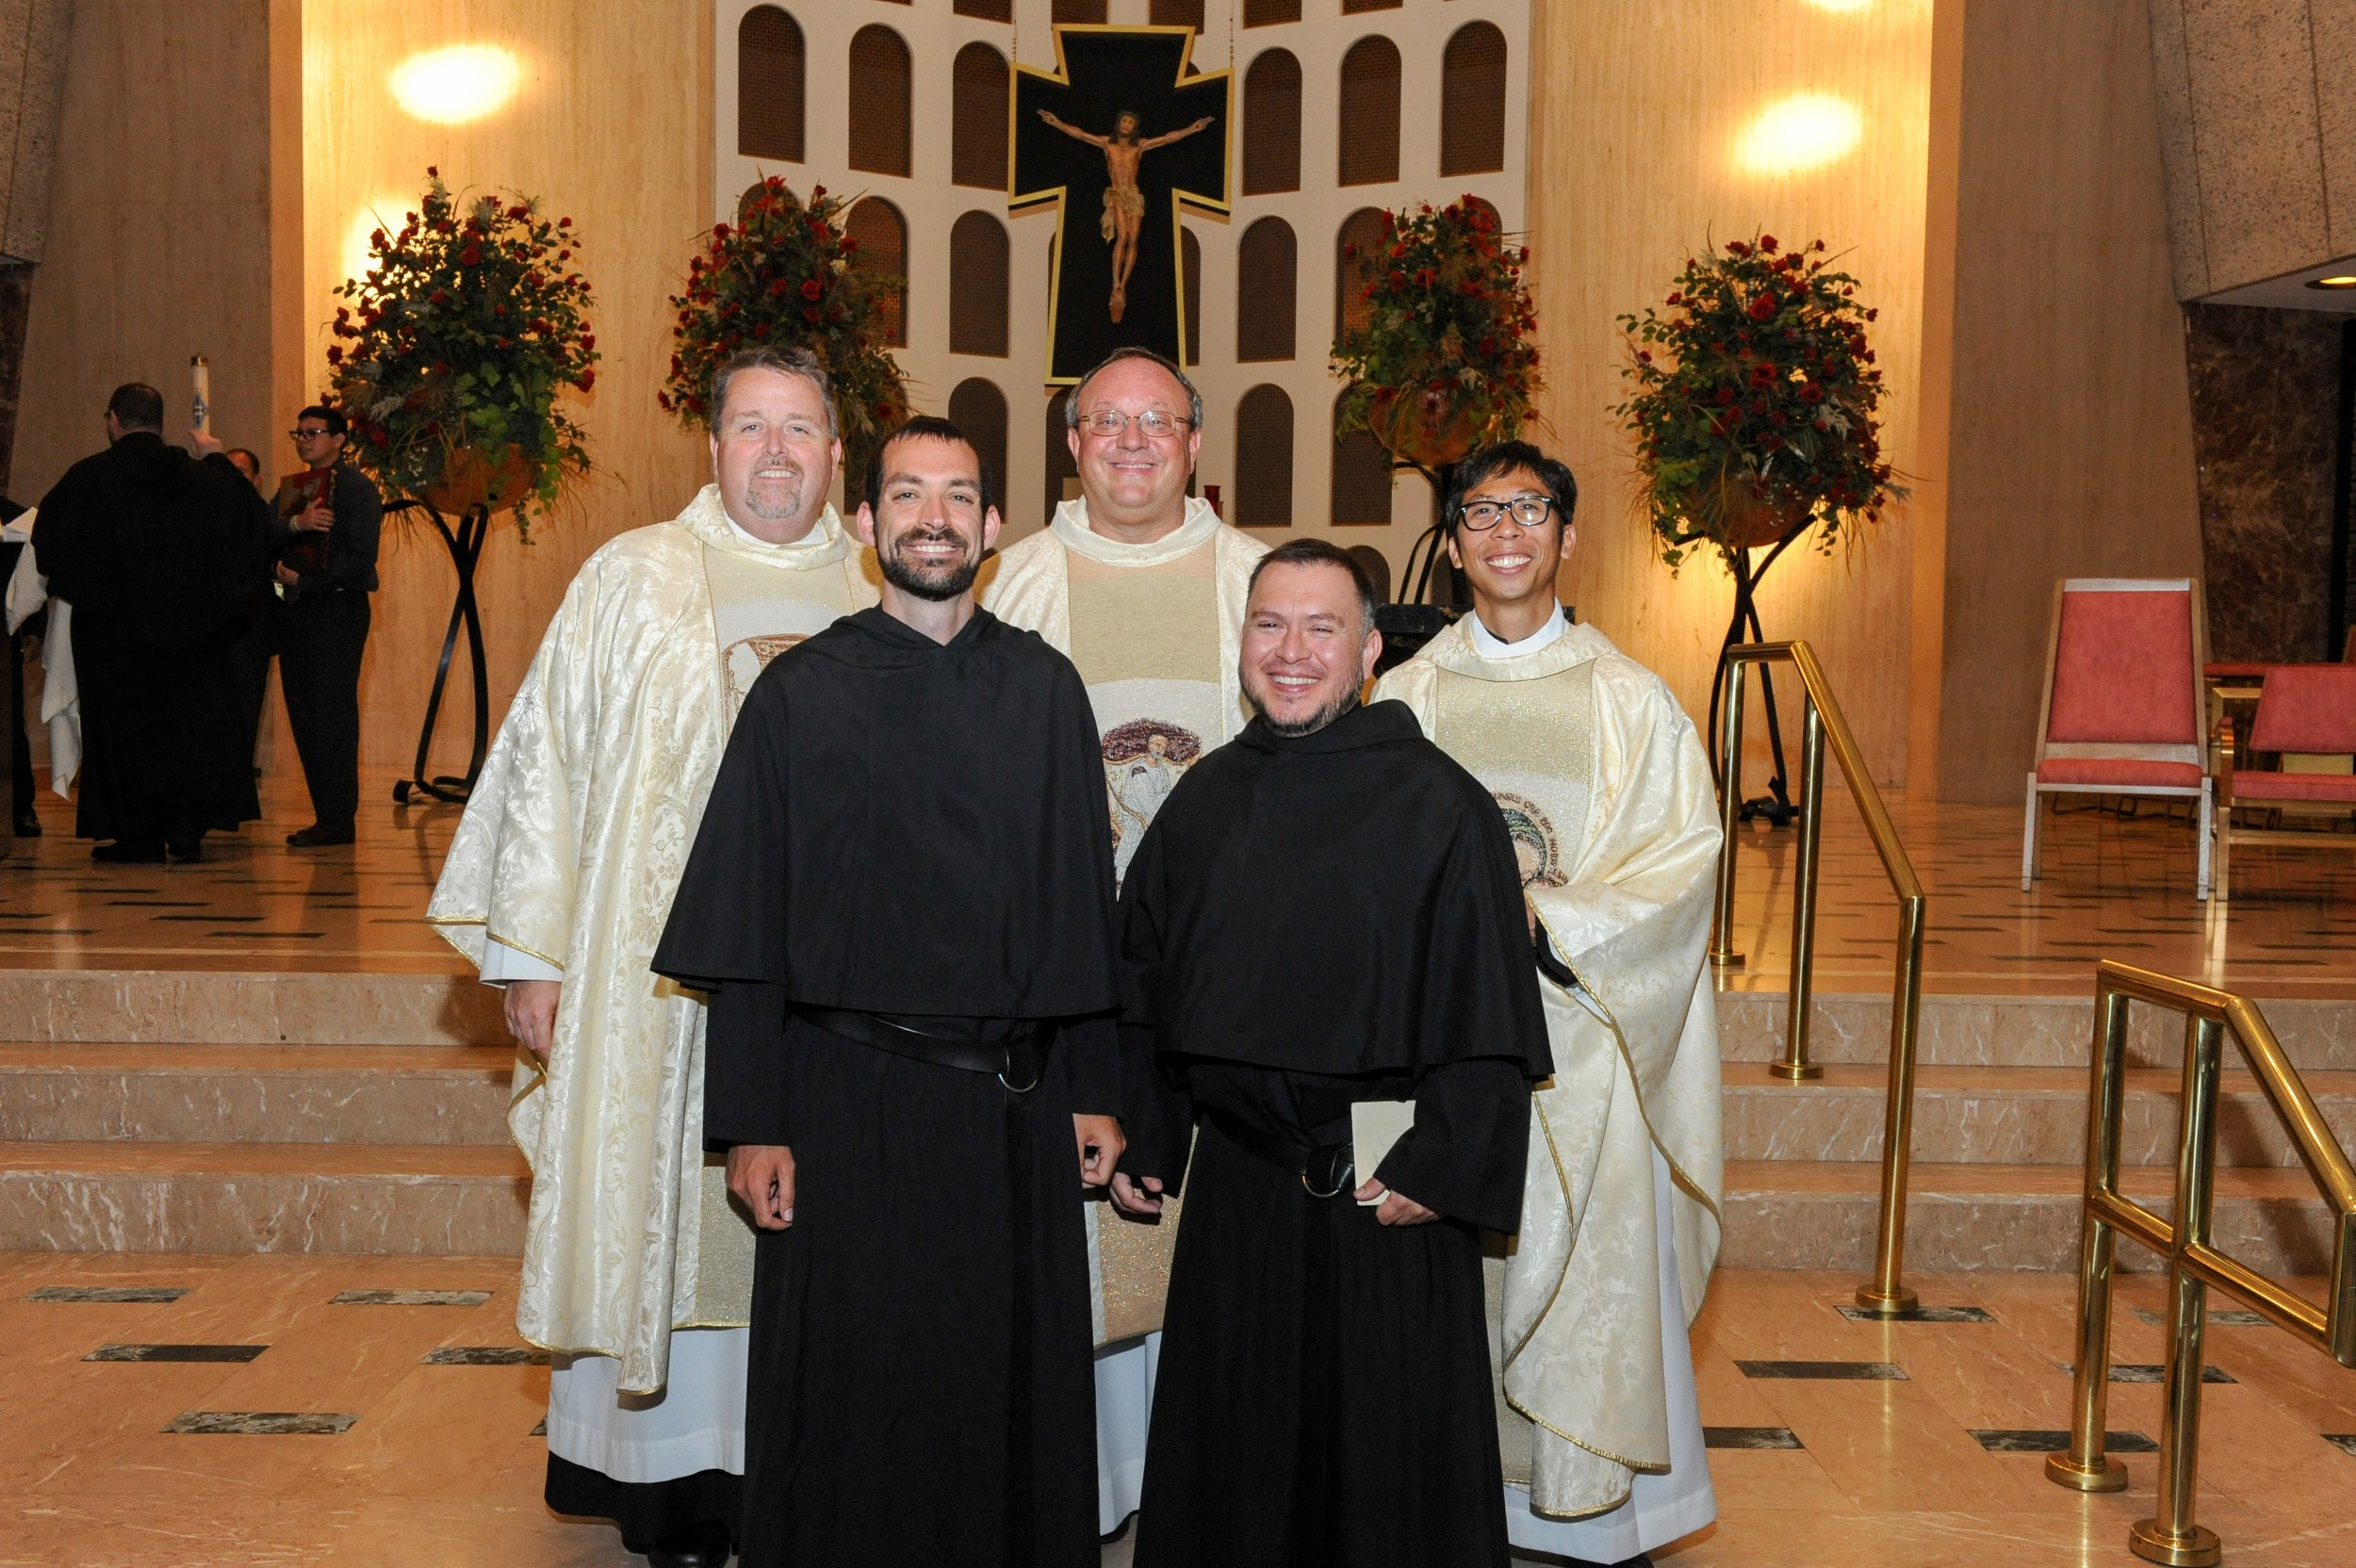 SOLEMN PROFESSIONS OF VOWS BROS. STEPHEN ISLEY, OSA AND JOE RUIZ, OSA ON FEAST OF ST. AUGUSTINE 2016